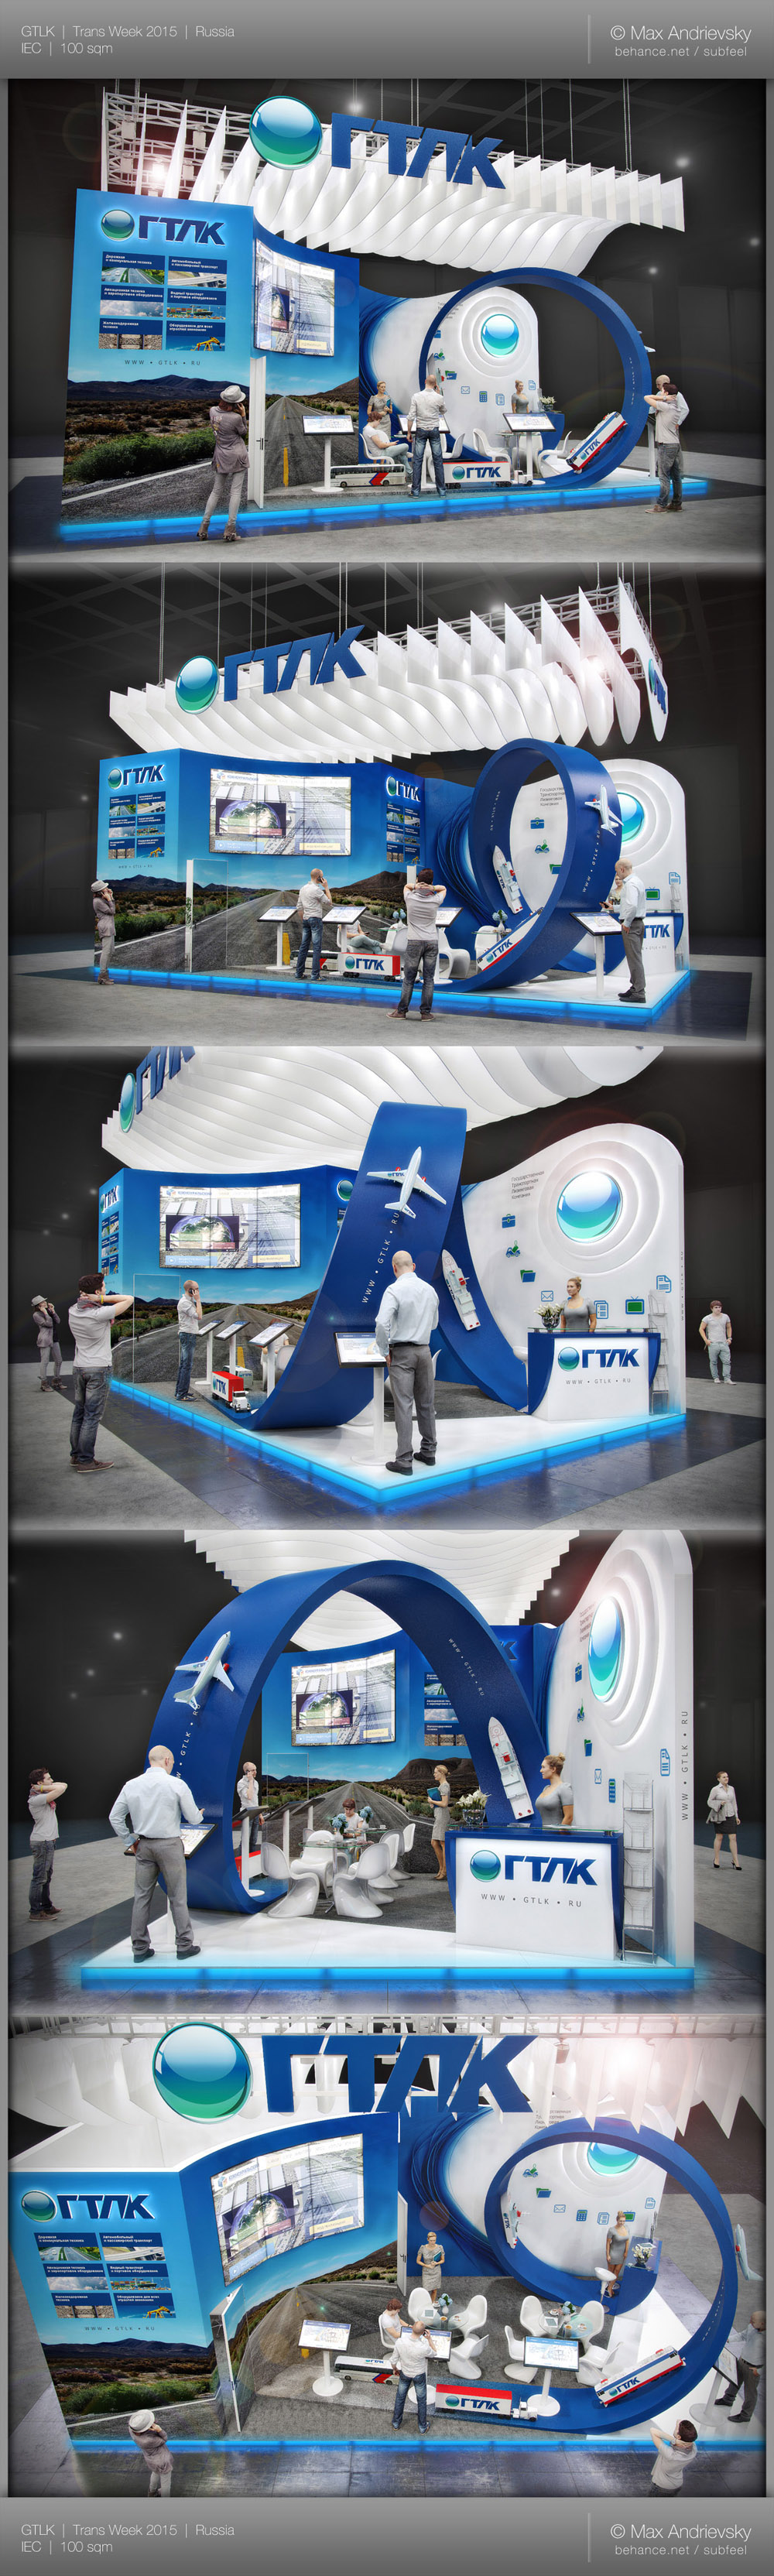 Exhibition Stand Russia : Gtlk trans week russia sq m … exhibition